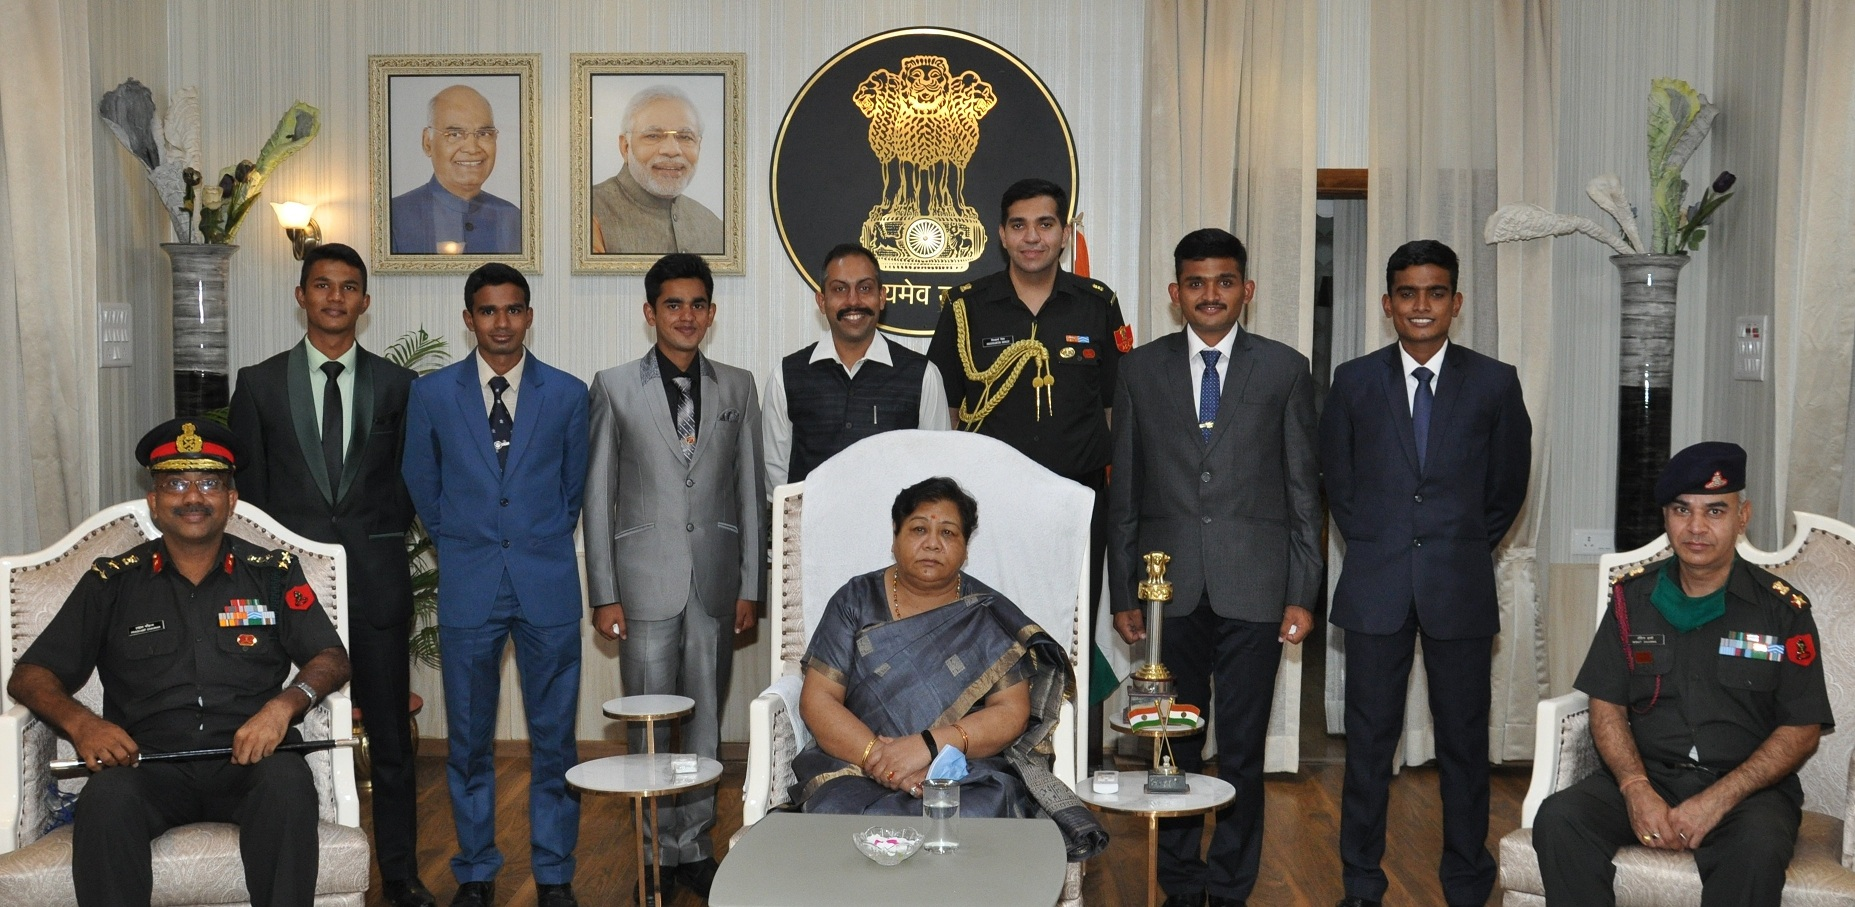 Cadets of Chhattisgarh pass out from the National Defense Academy to the Governor